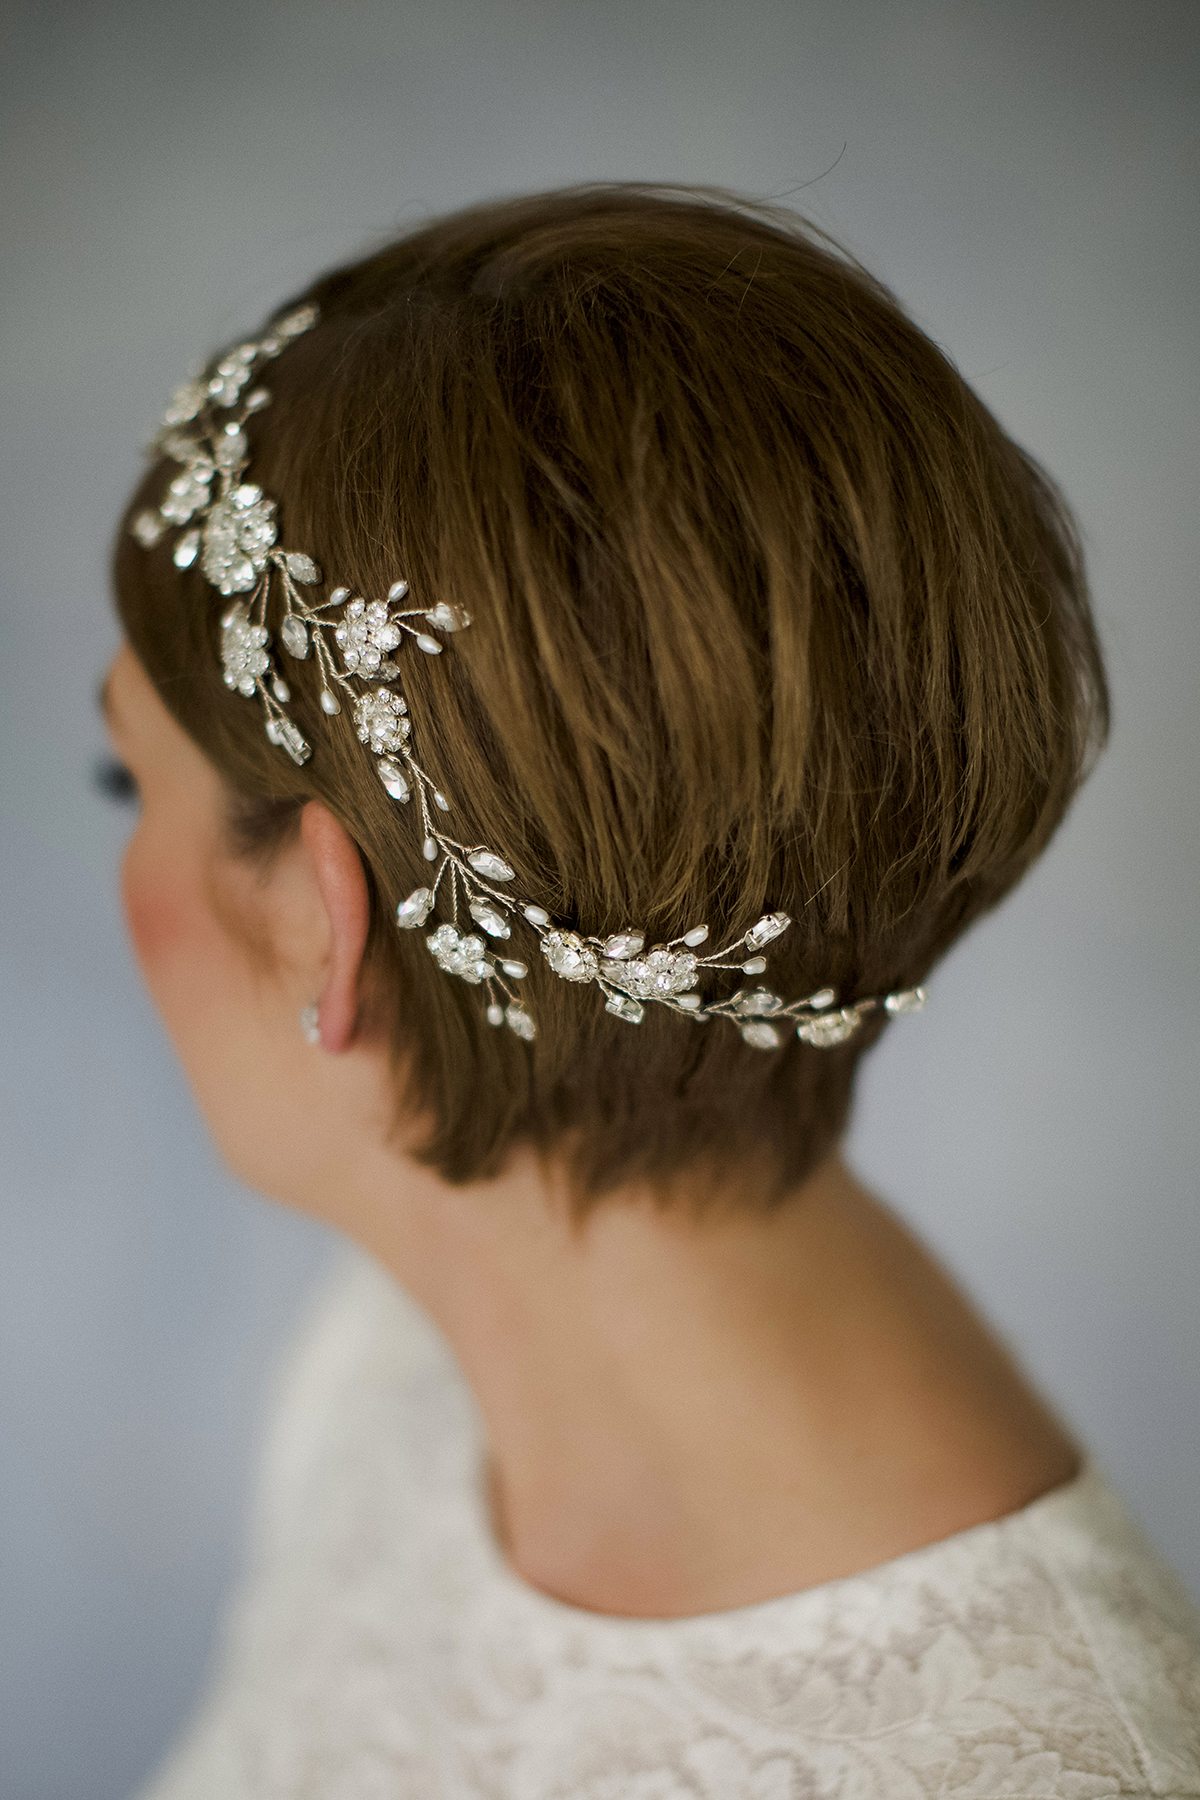 dd7324fcf79 How To Style Wedding Hair Accessories With Short Hair